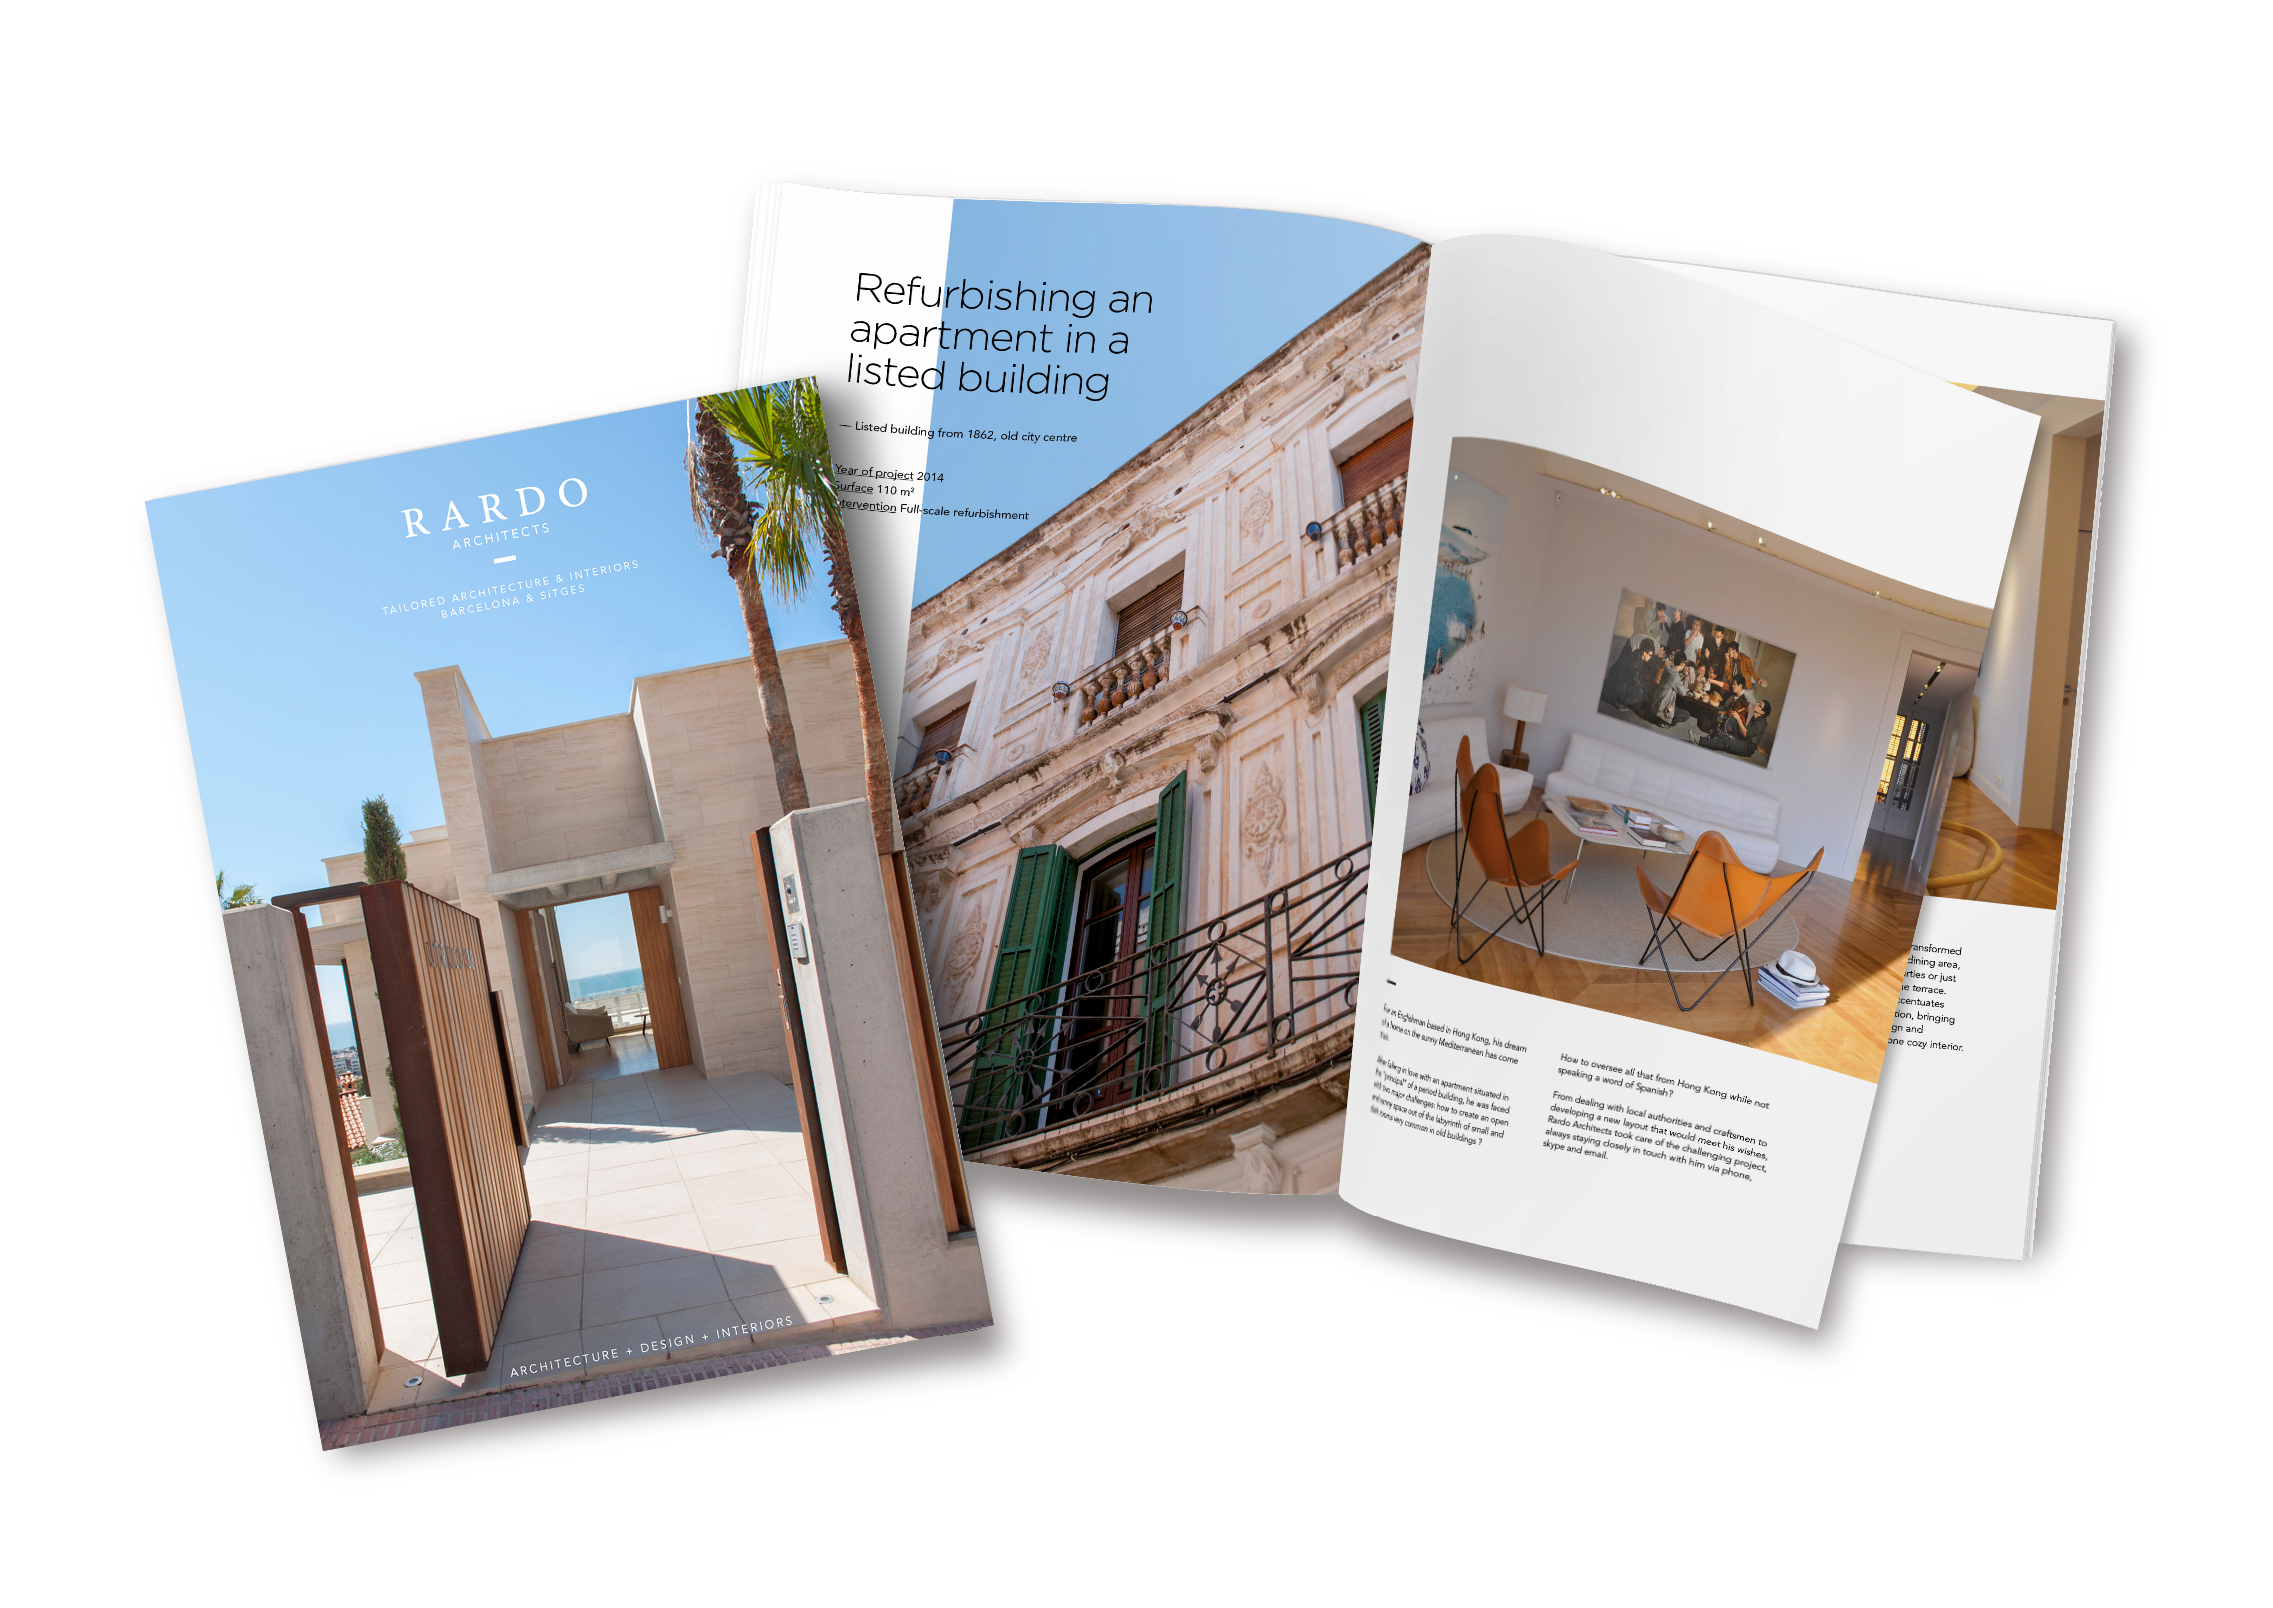 rardo-architects-refurbishments-architecture-in-sitges-and-barcelona-free-brochure-modern-design-ideas.png